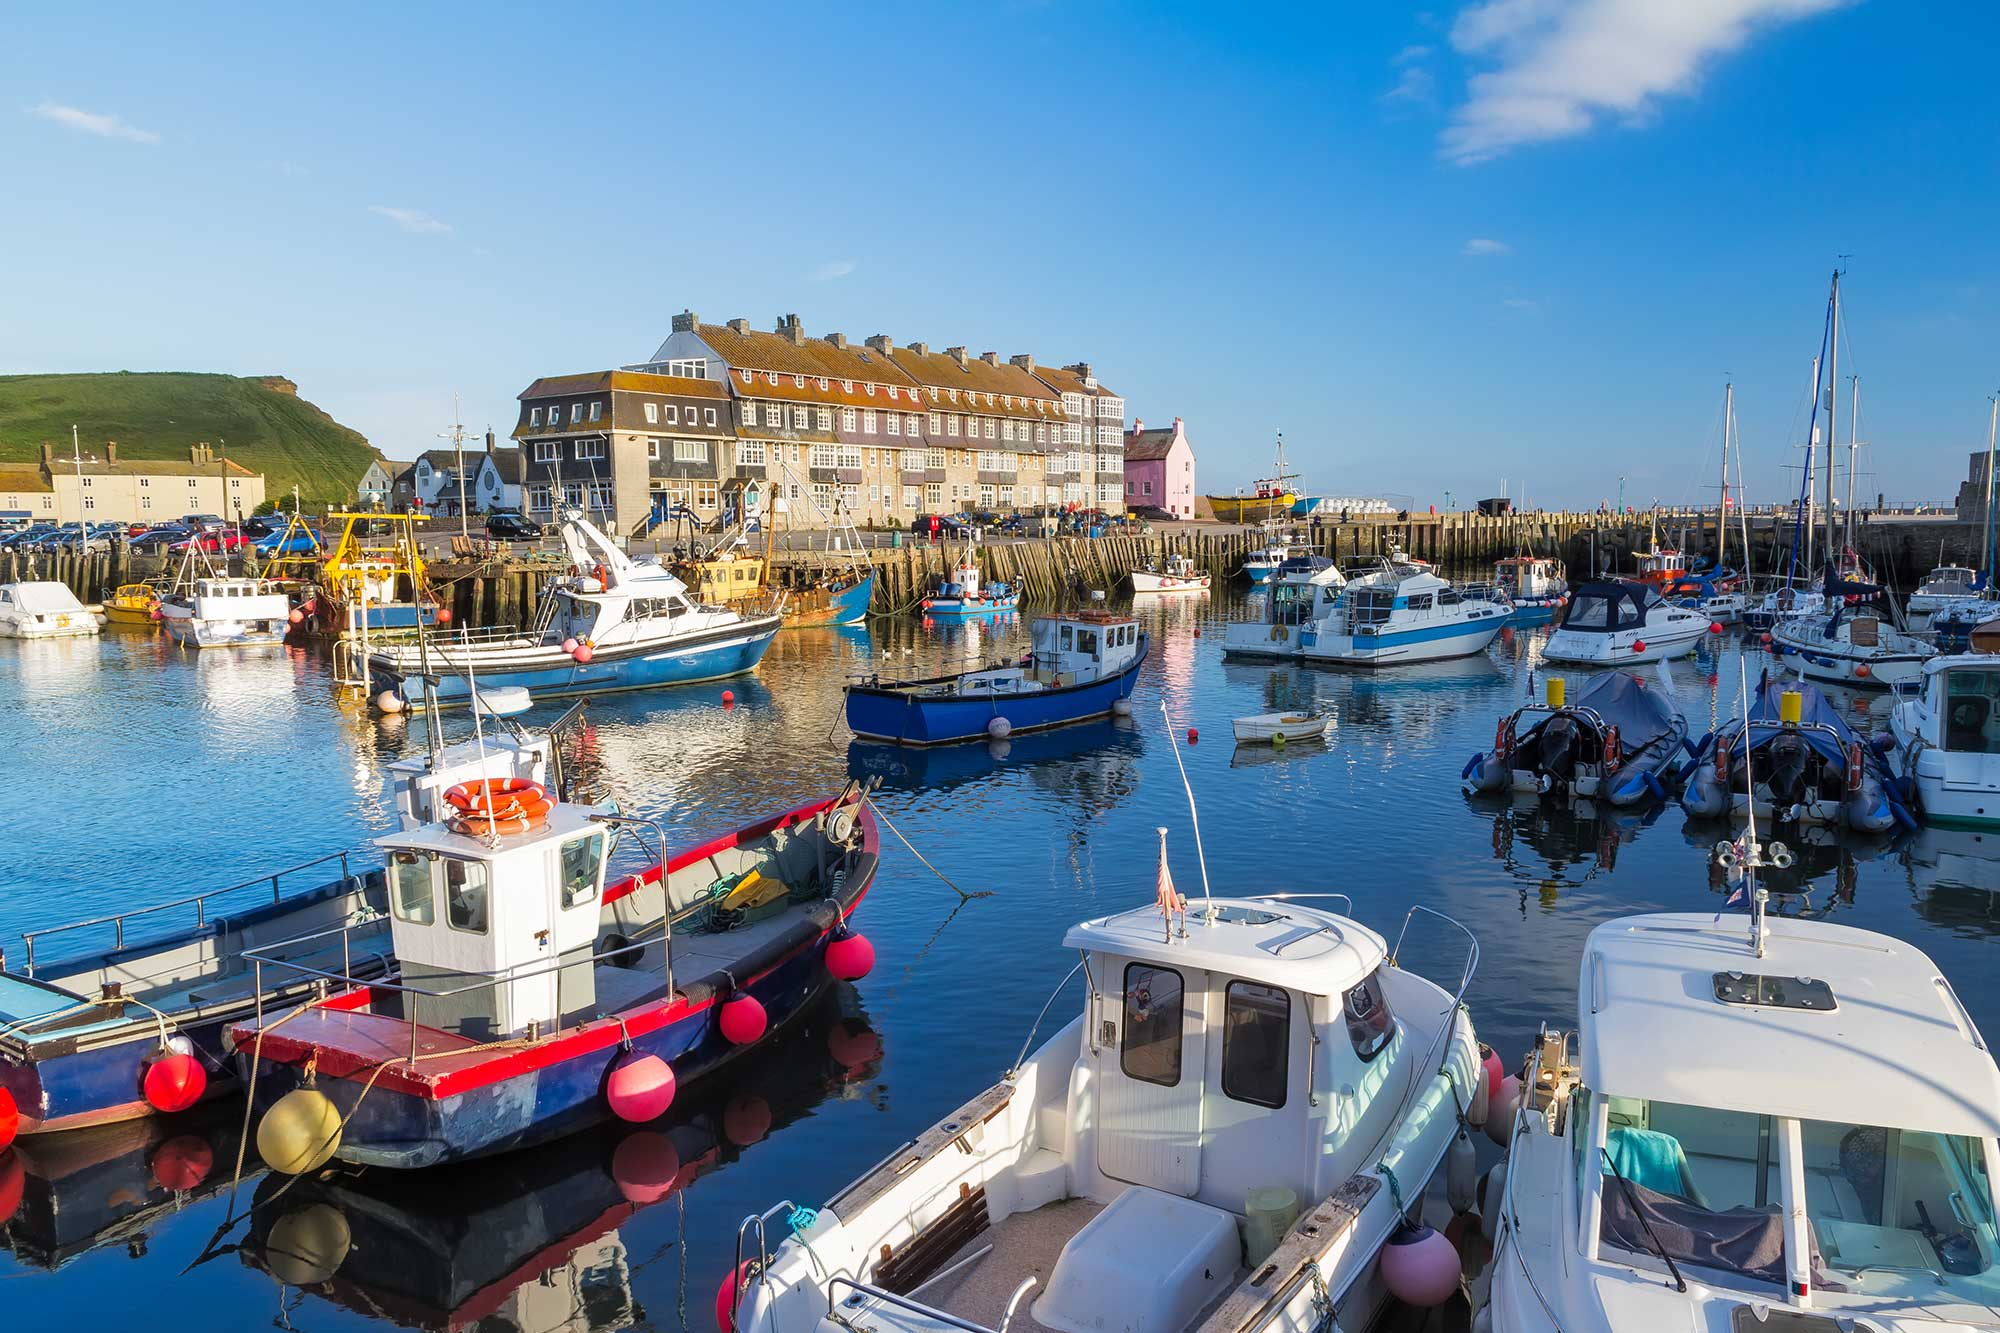 The Stunning West Bay Harbour Is Just A Moment's Walk From Heatherbell Cottage